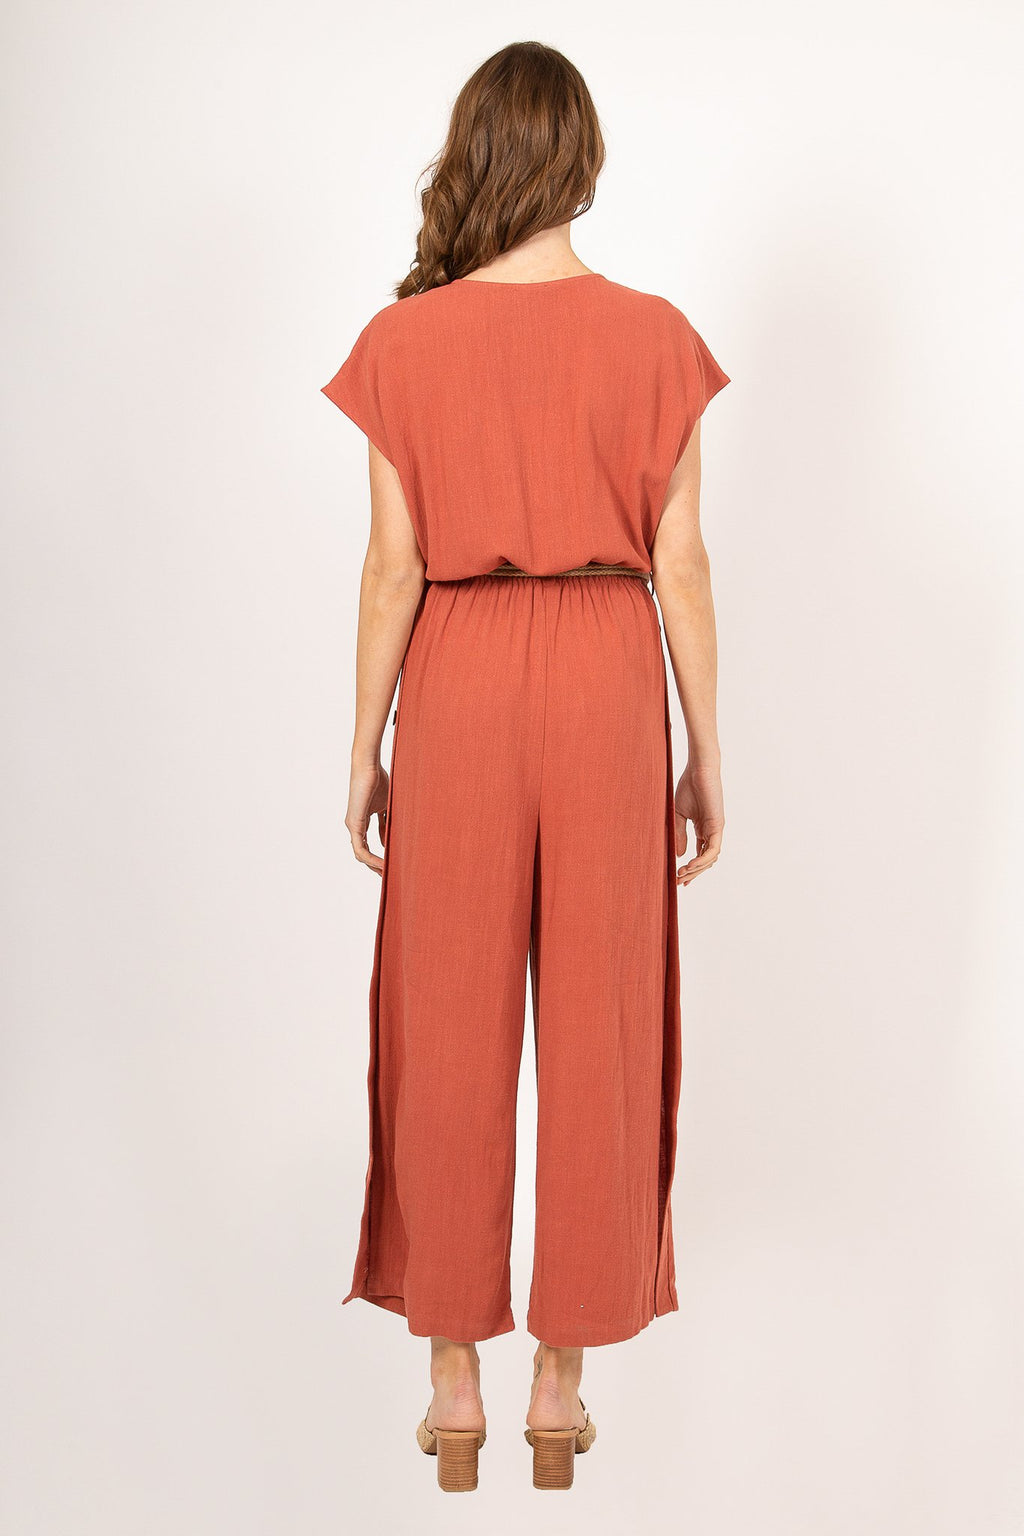 JUMPSUIT FEATURING A THIN ROPE BELT AND BUTTON SOWN SIDE SLITS